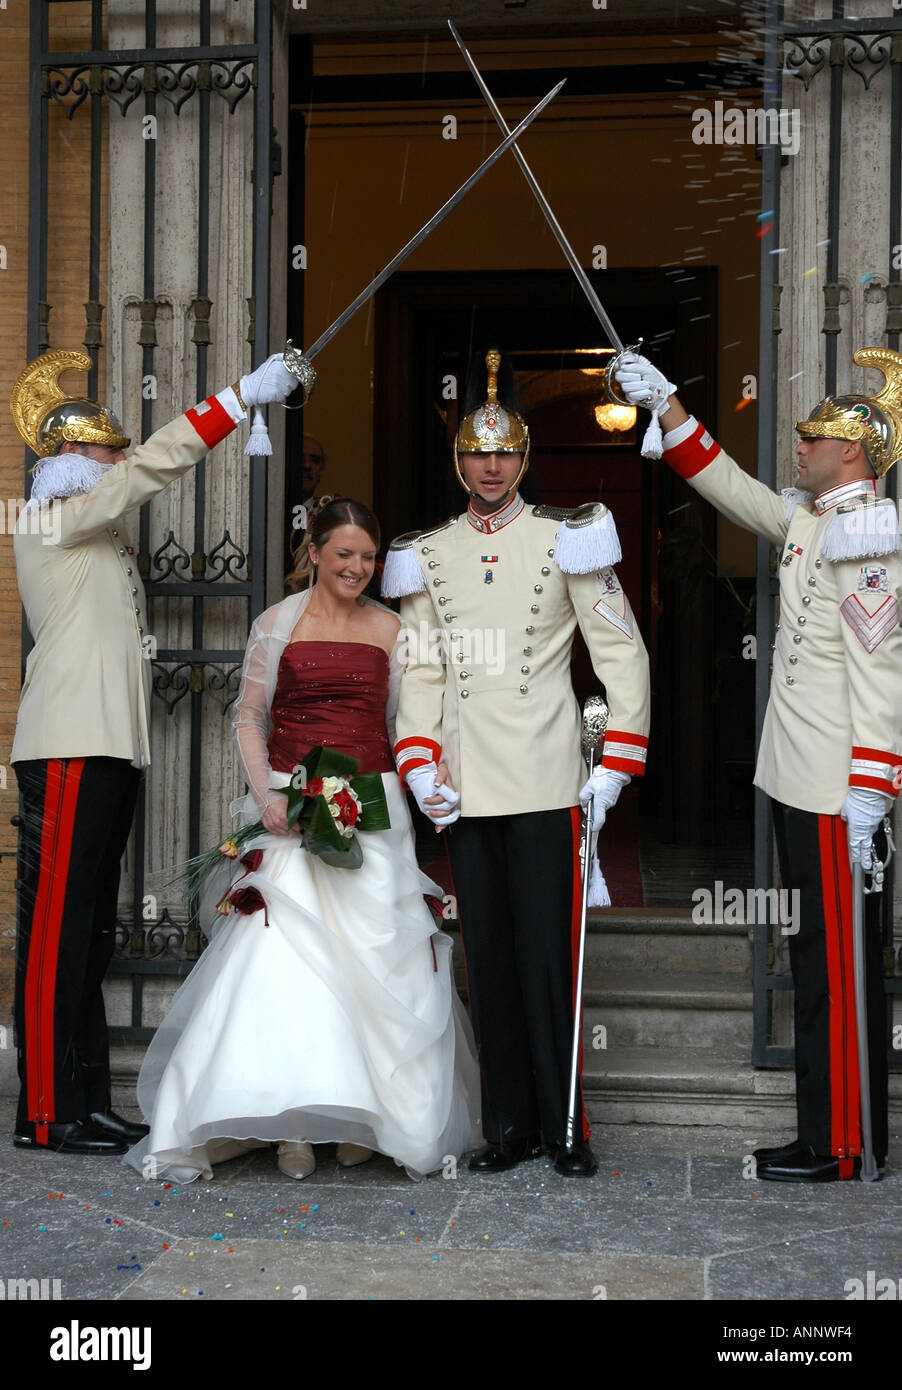 In Rome crossed swords and full dress uniforms mark the Campidoglio wedding of a Presidential guardsman and his bride - Stock Image